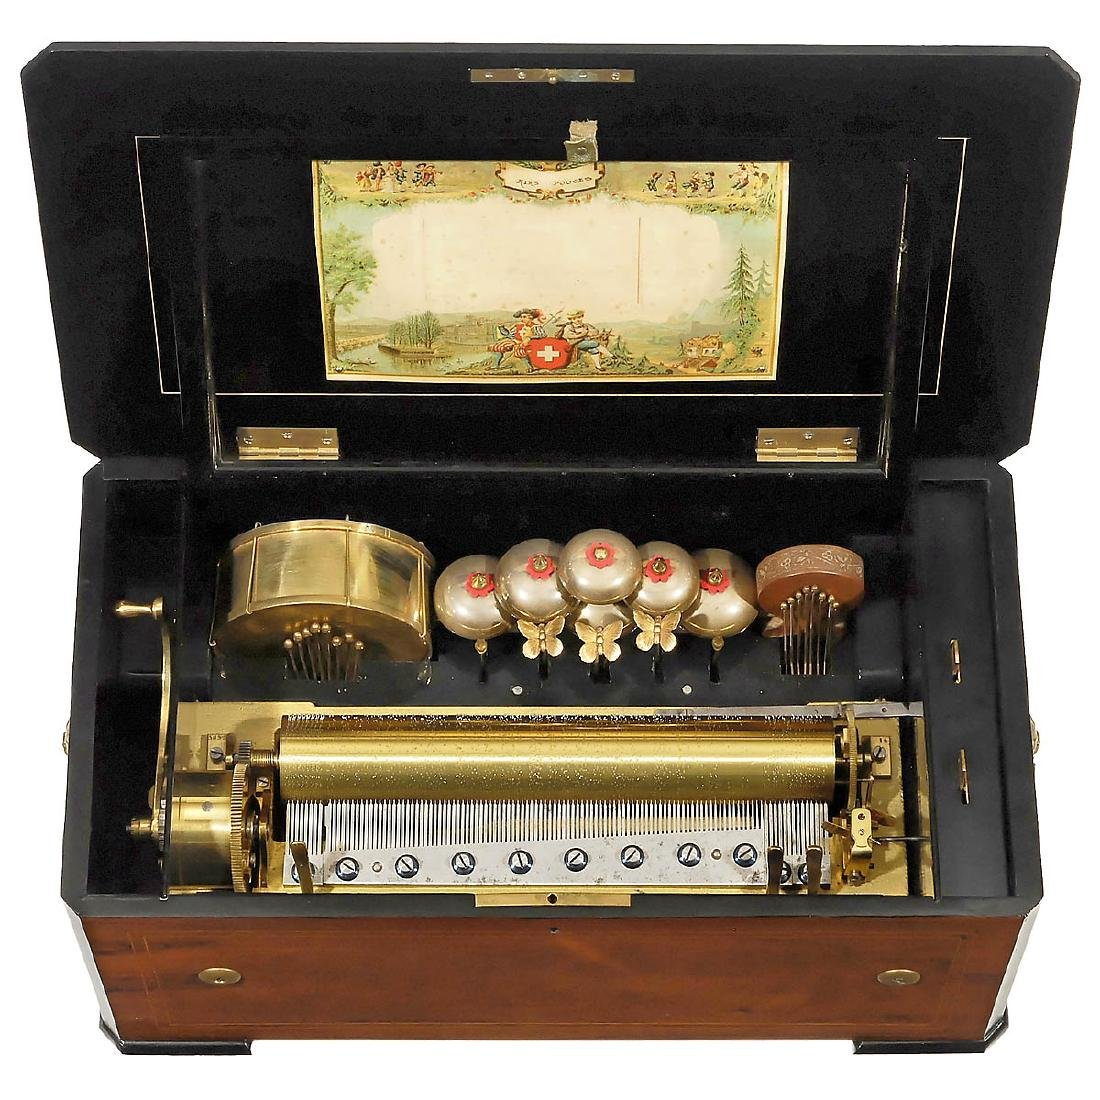 Orchestral Musical Box with Overture Motif, c. 1880